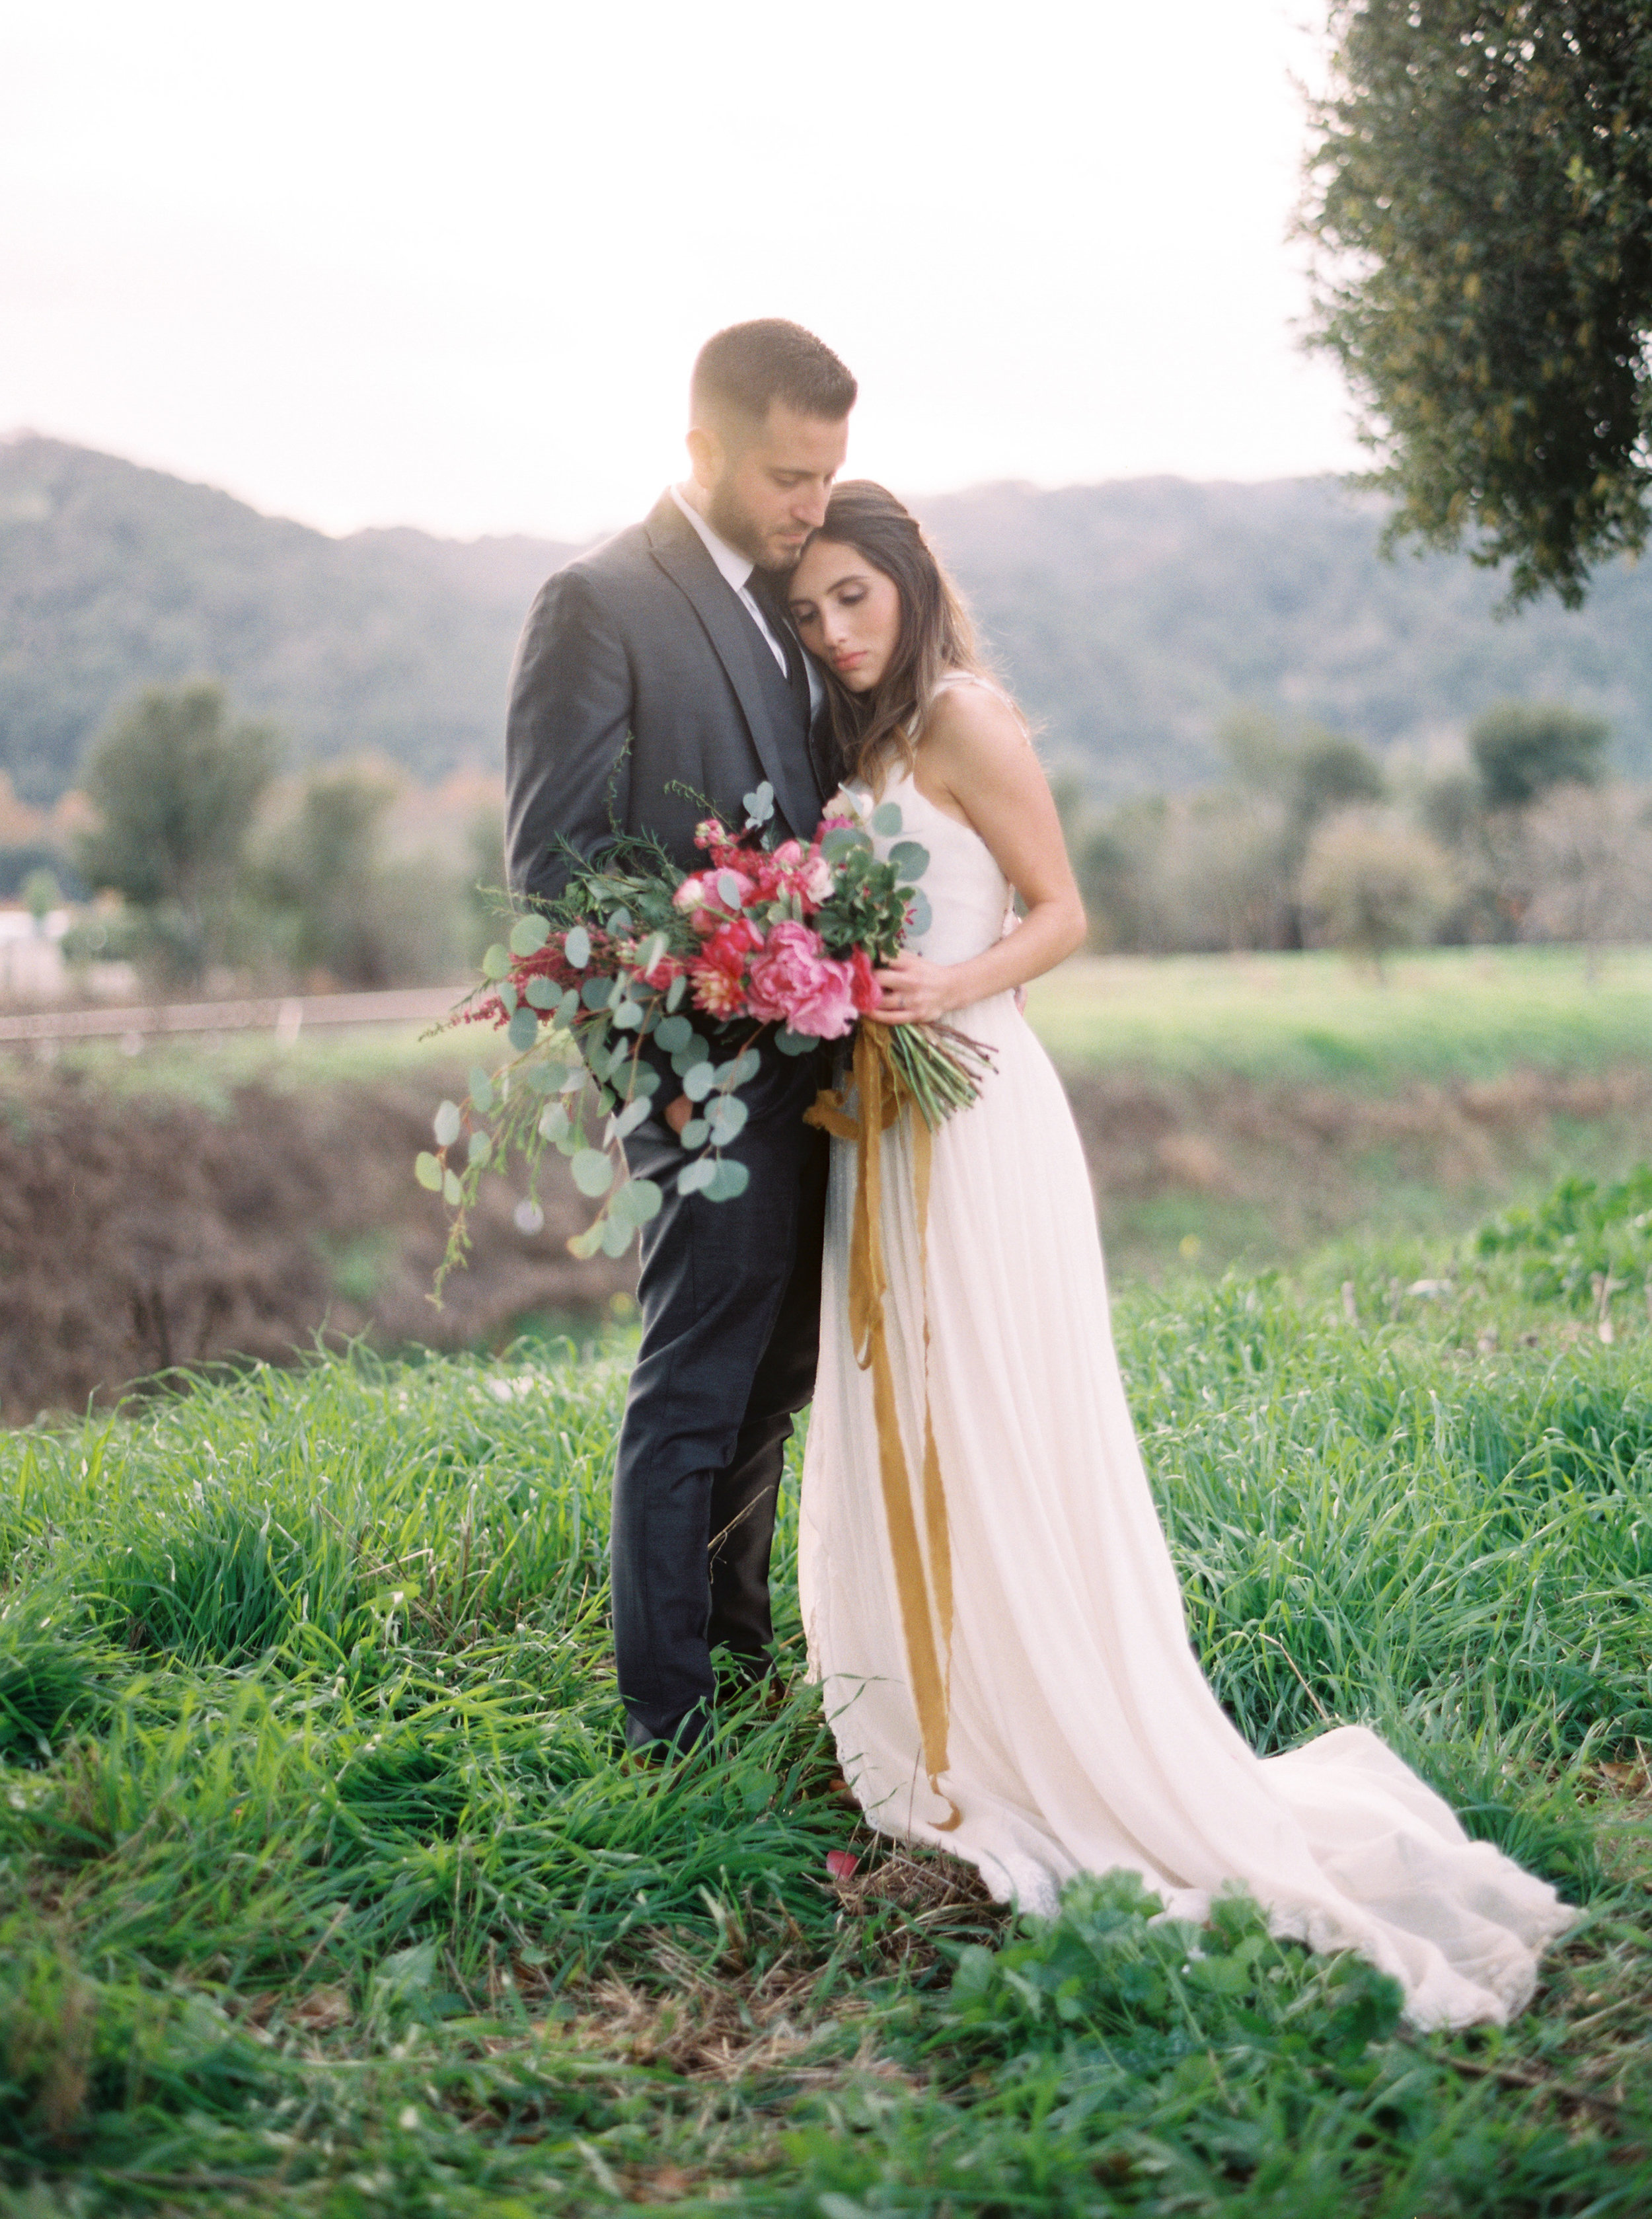 boho-inspired-wedding-at-casa-bella-in-sunol-california-46.jpg